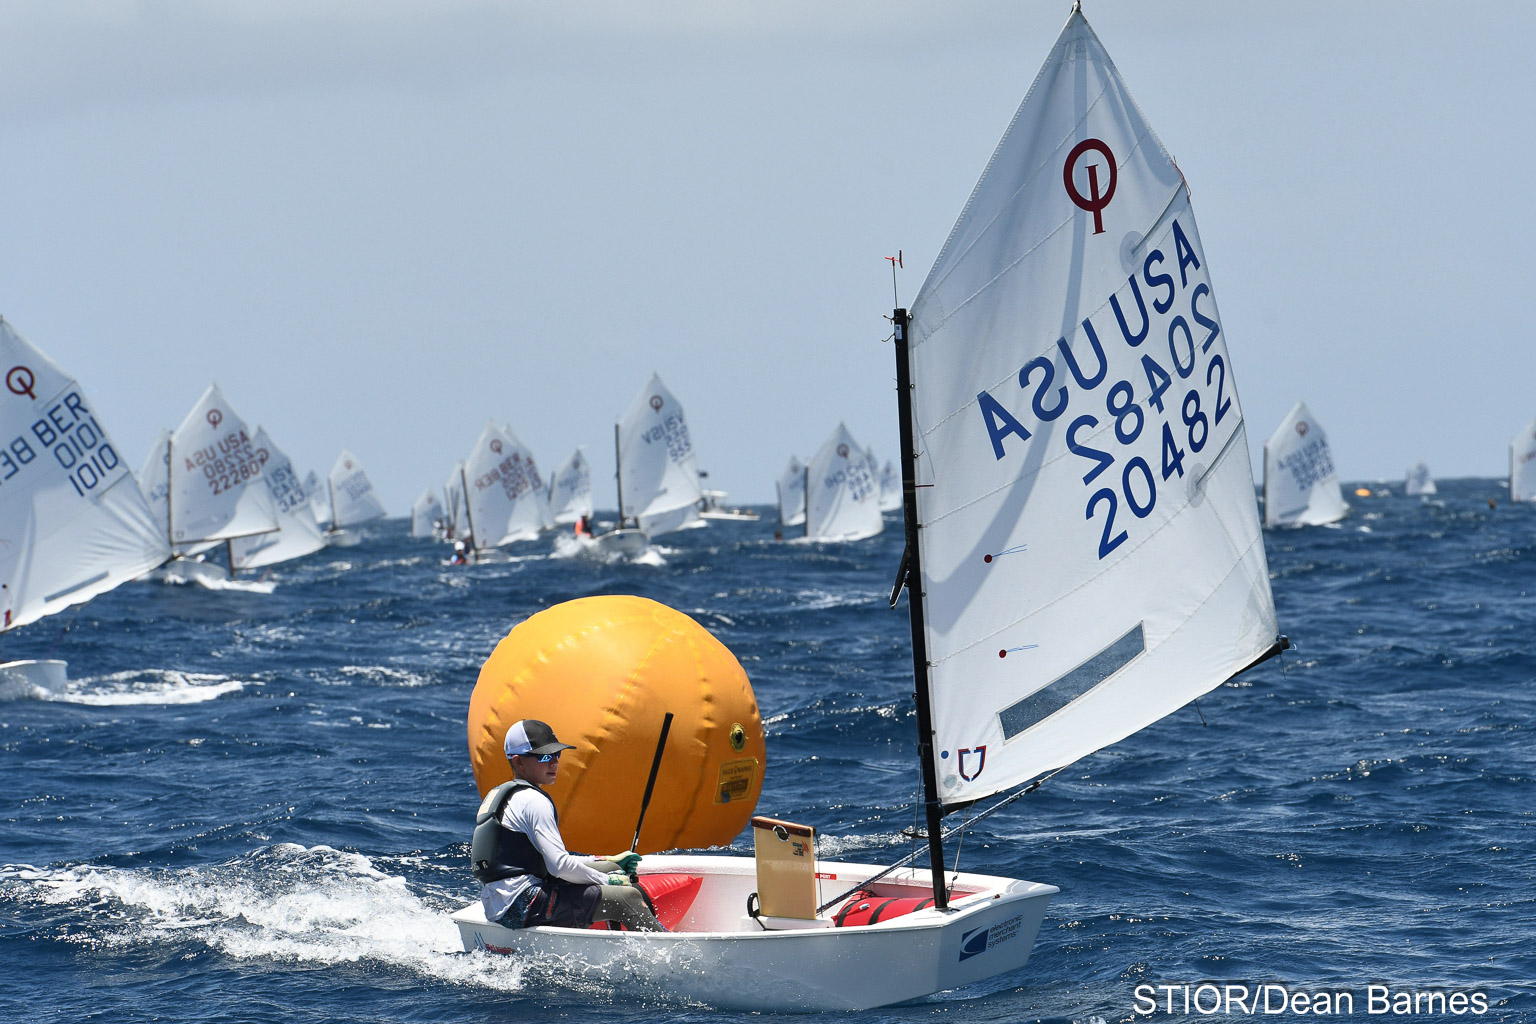 The USA's Griggs Diemar wins the 27th International Optimist Regatta, presented by EMS Virgin Islands. Credit: Dean Barnes